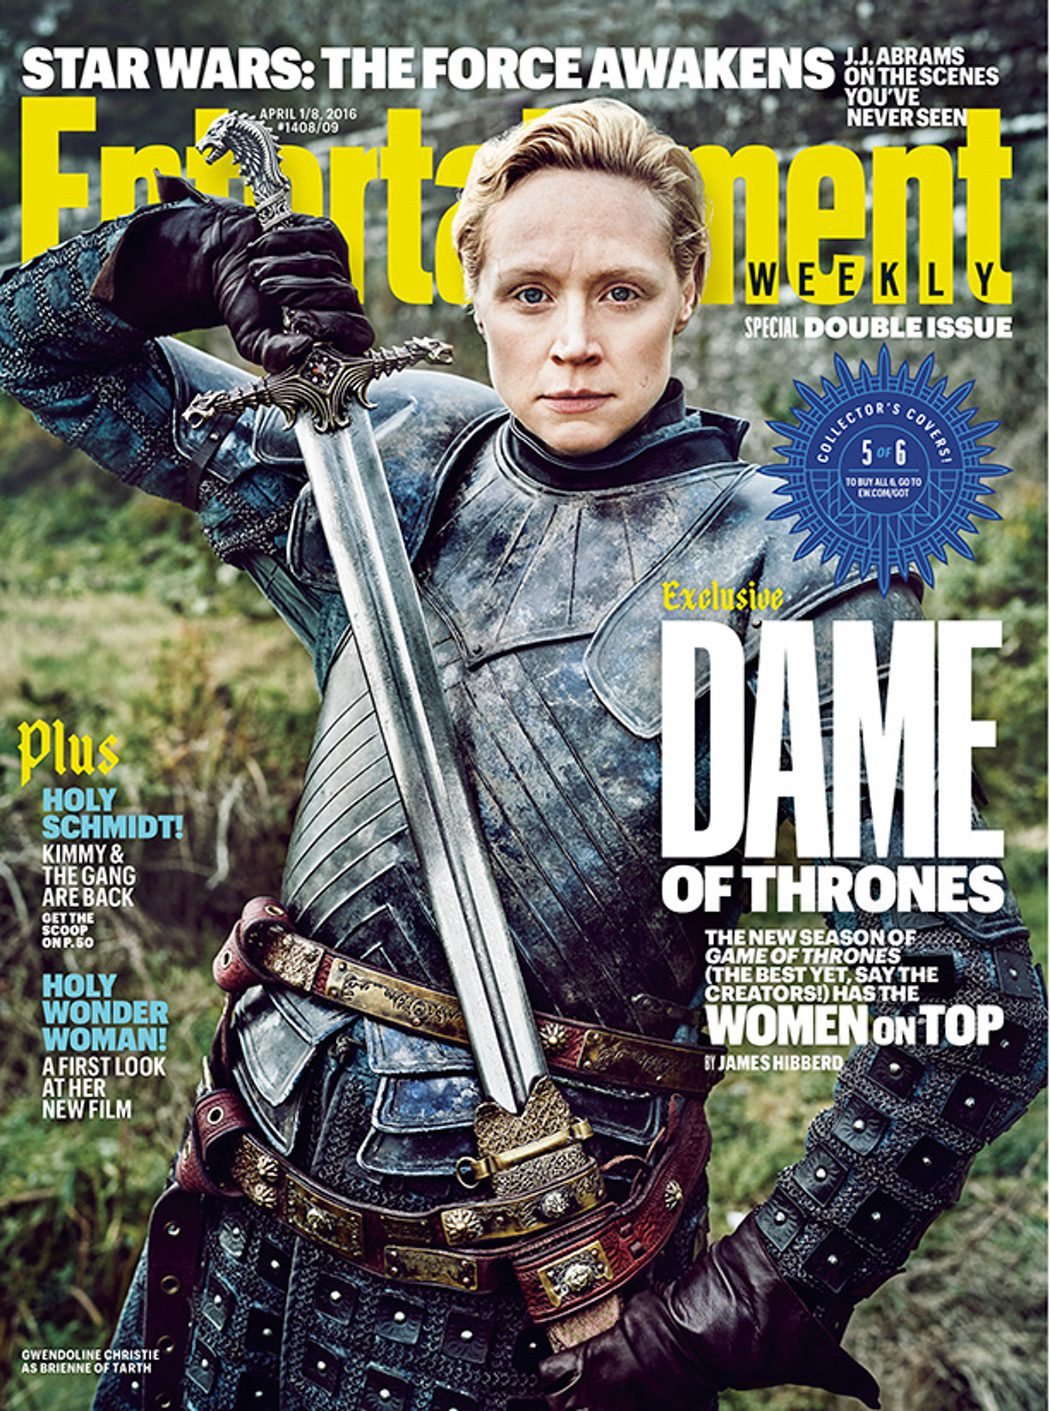 Gwendoline Christie portada Entertainment Weekly